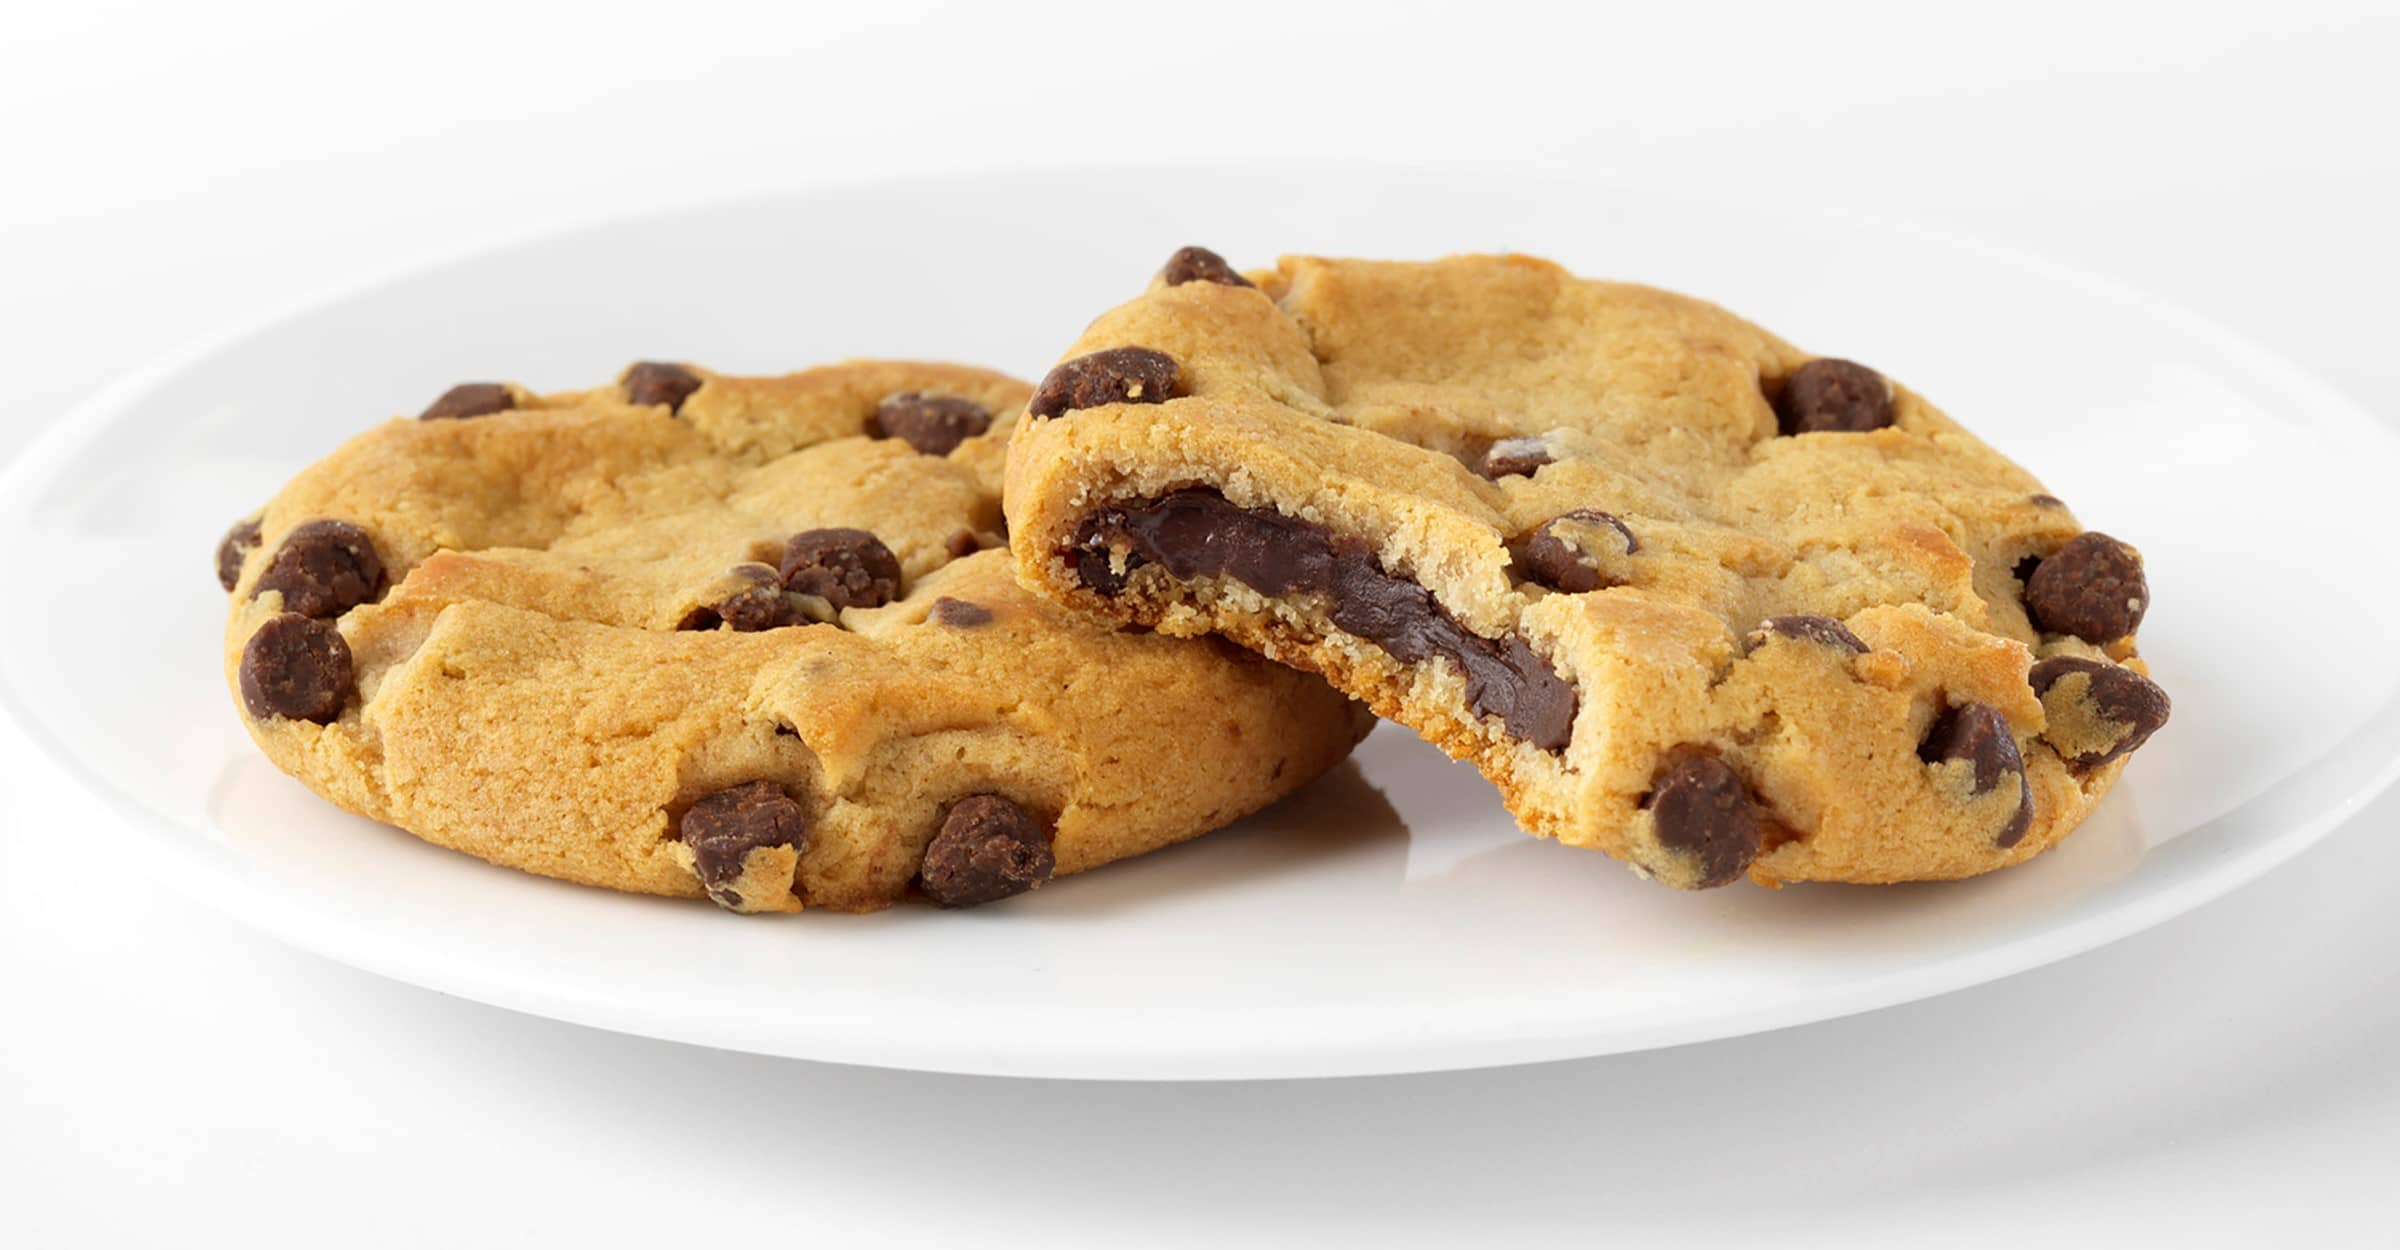 Chips Ahoy! partners with Hershey's for limited-edition fudge filled cookies 17